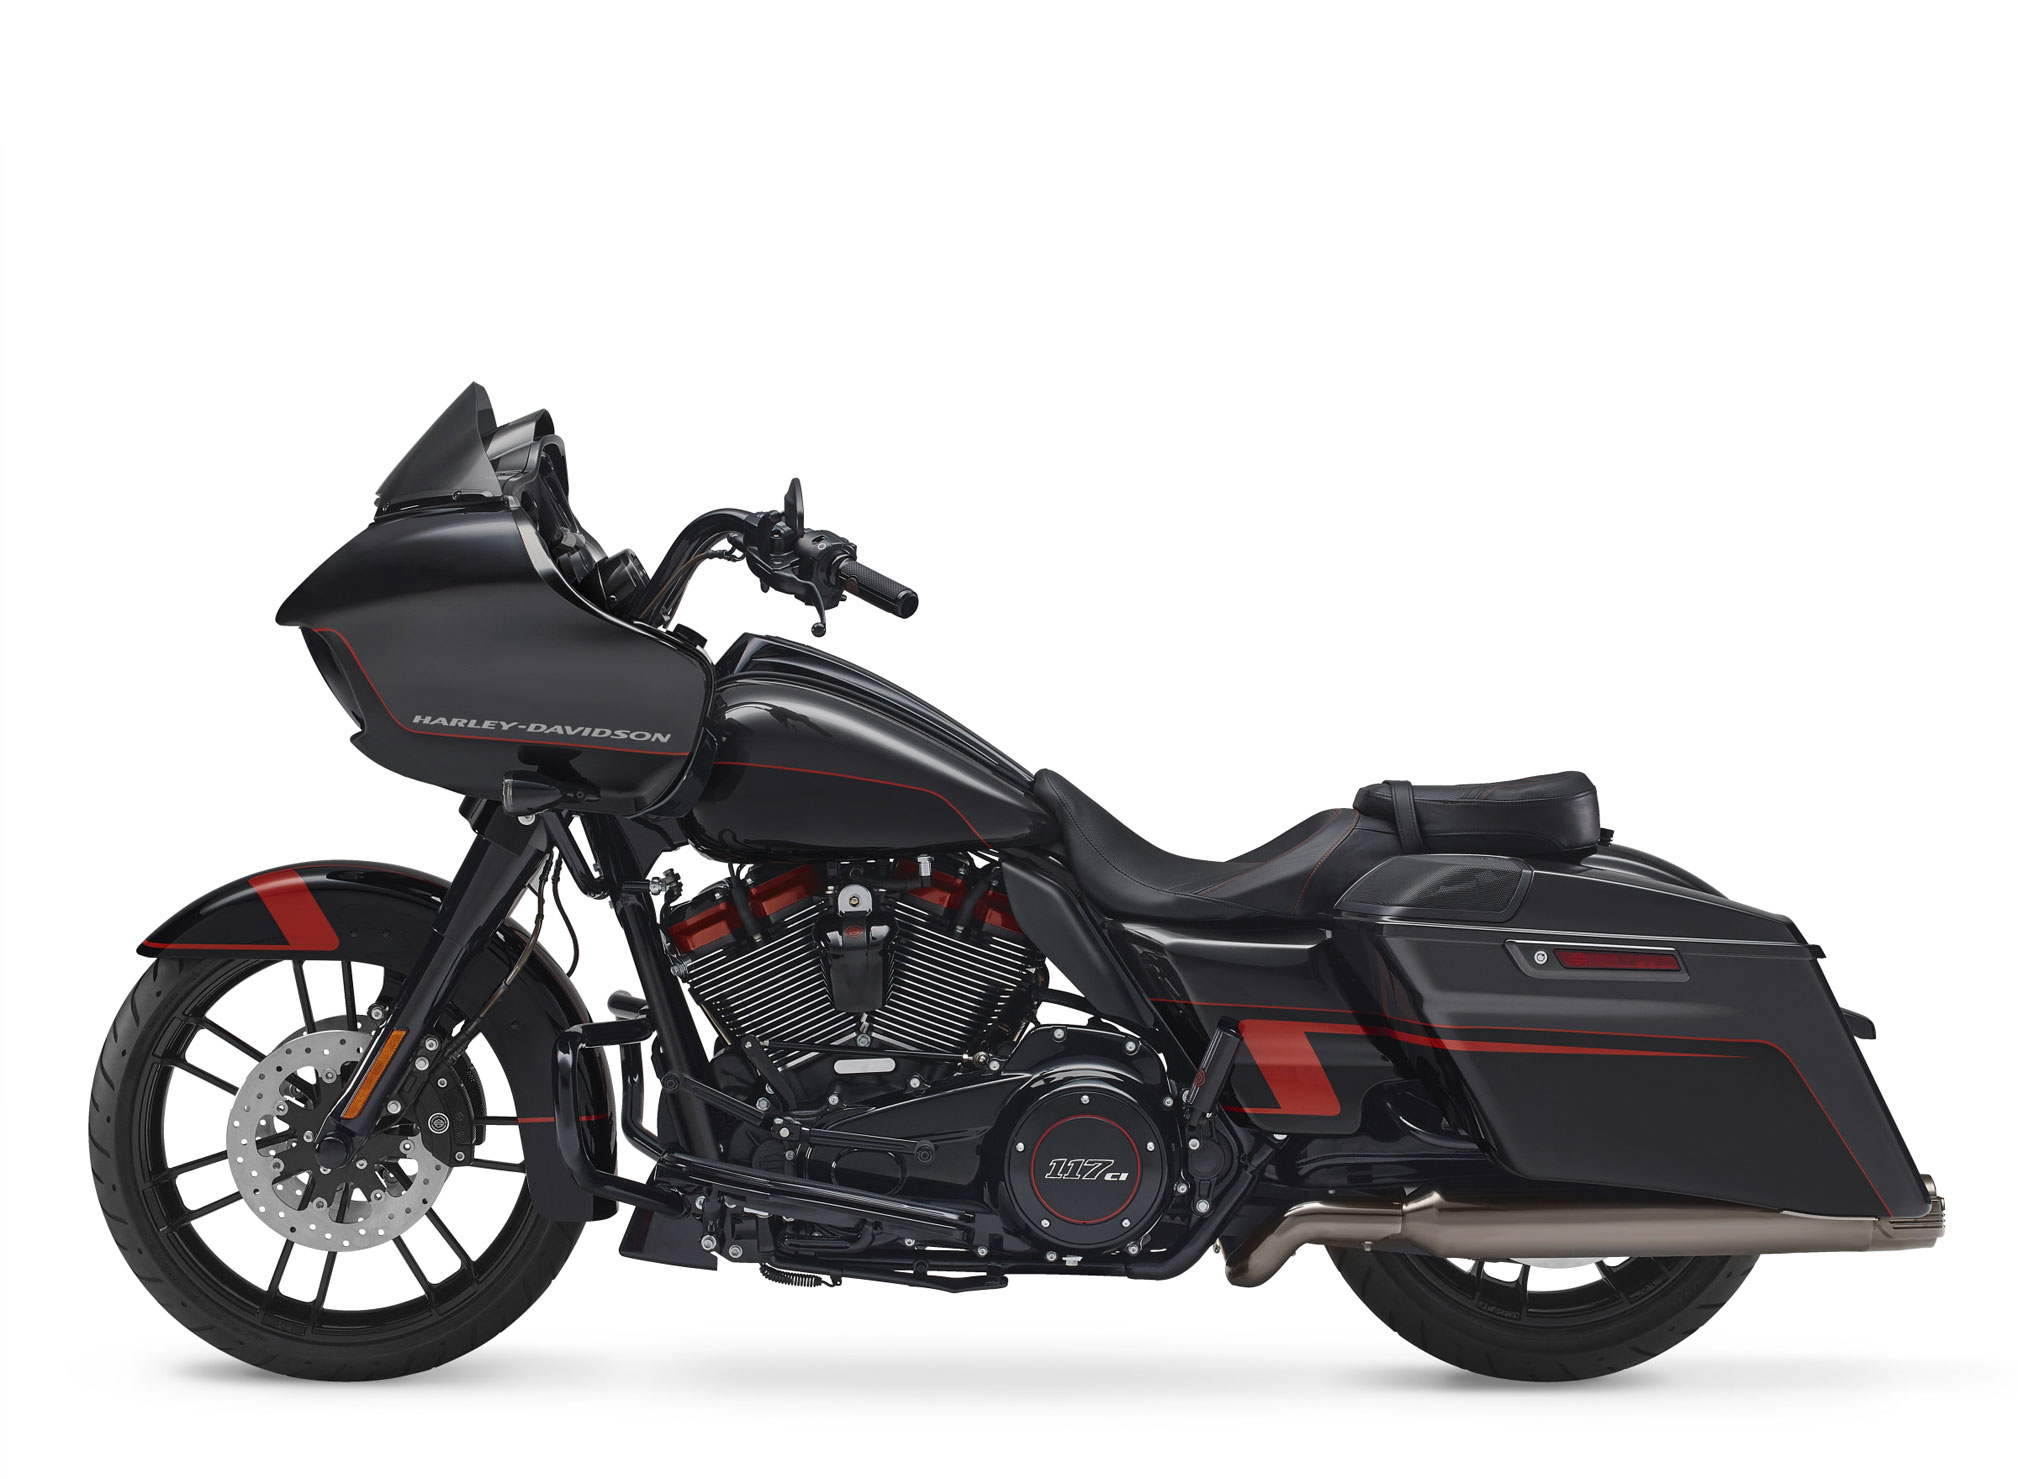 2018 harley davidson cvo road glide review totalmotorcycle. Black Bedroom Furniture Sets. Home Design Ideas